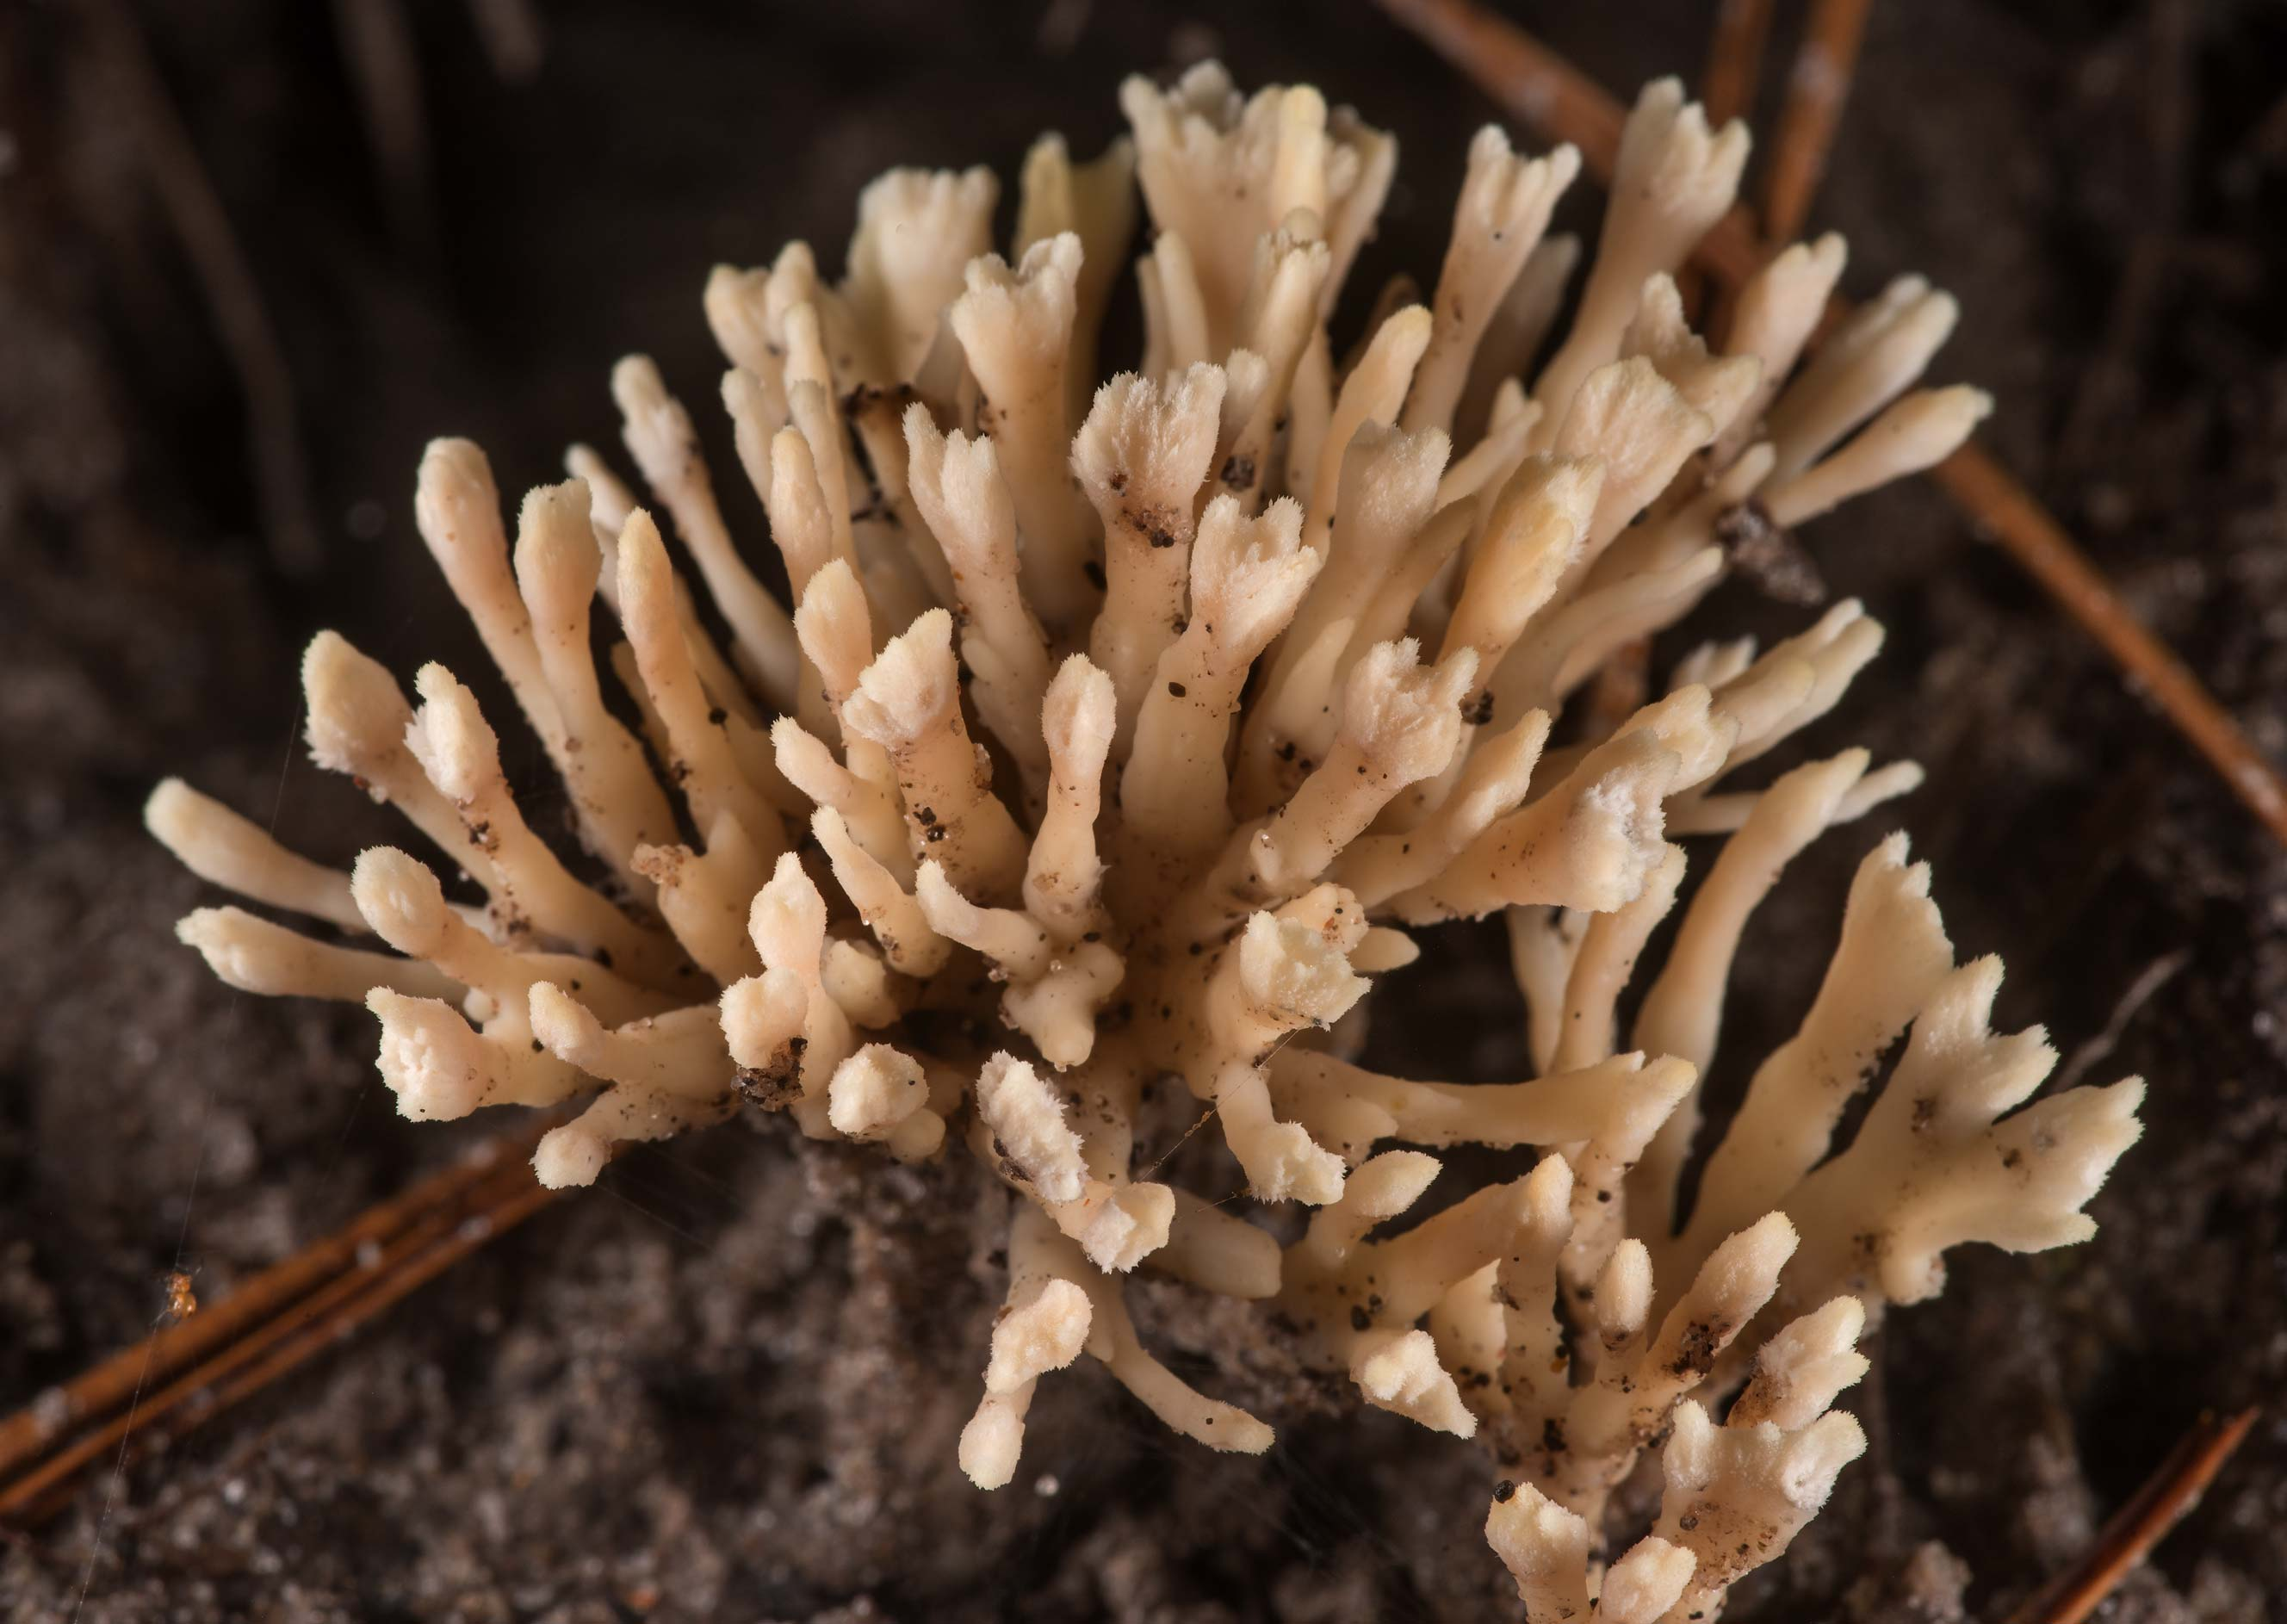 False coral mushrooms (Tremellodendron...National Forest near Huntsville. Texas